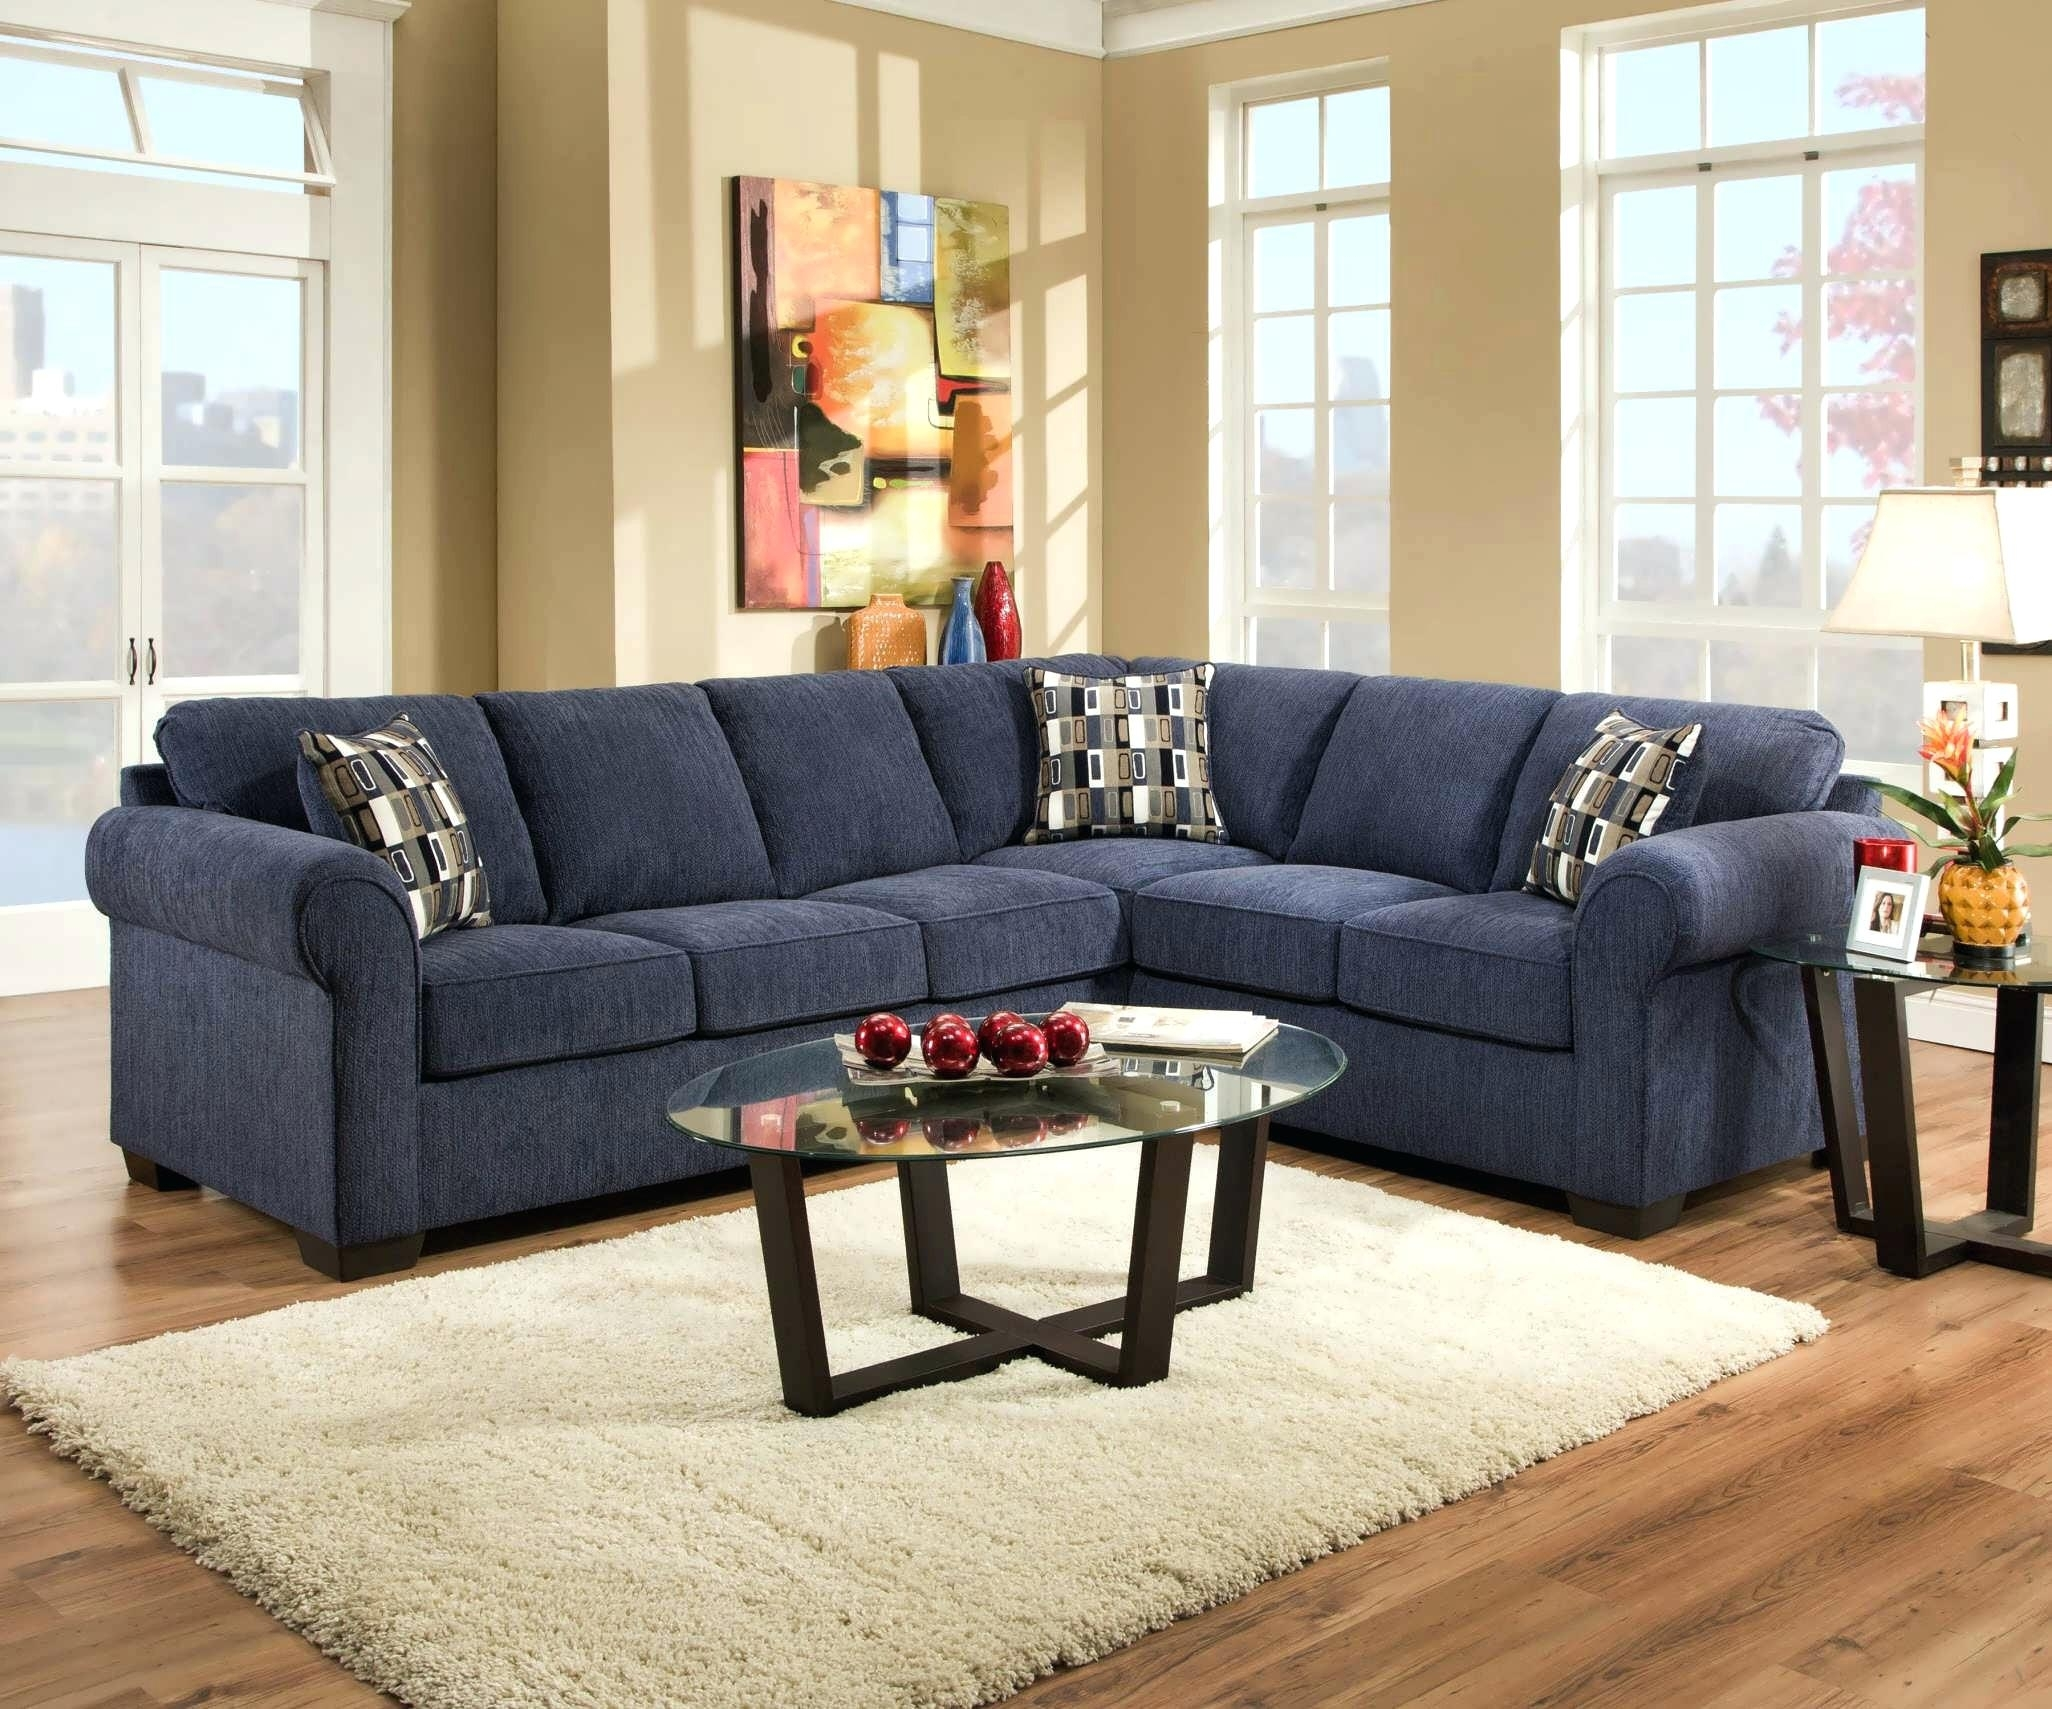 Liquidation Sale Mississauga 2018 Popular Canada Sale Sectional Sofas